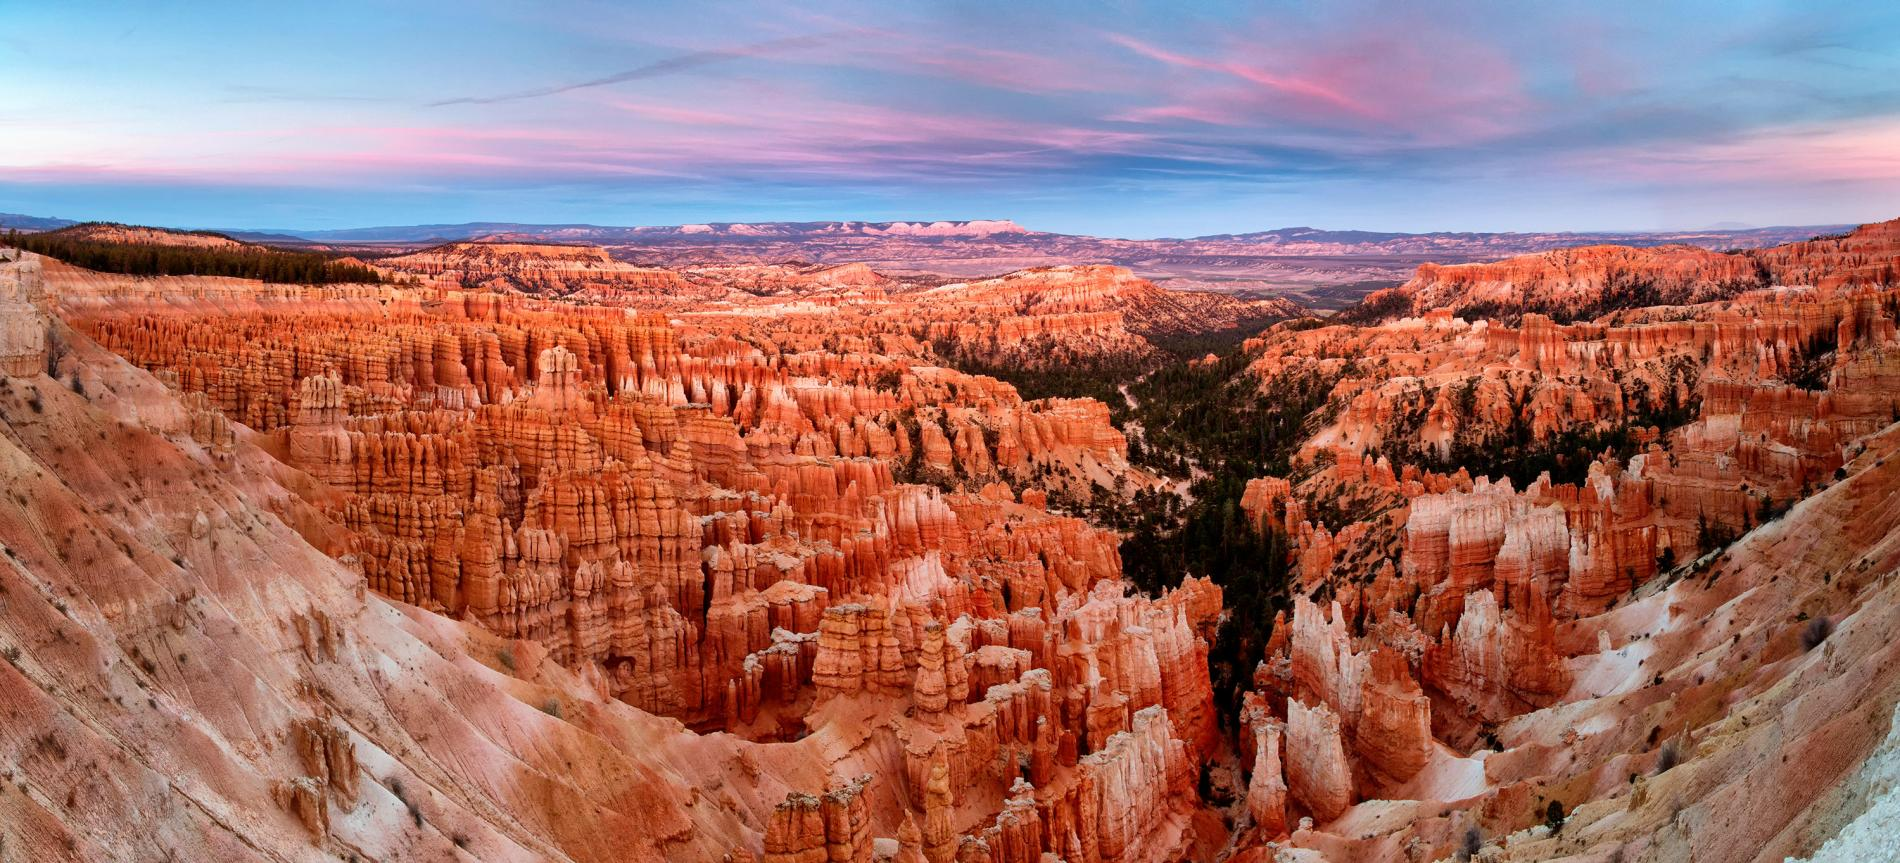 Bryce Canyon National Park features these strange rock formations that have formed over millions of years.